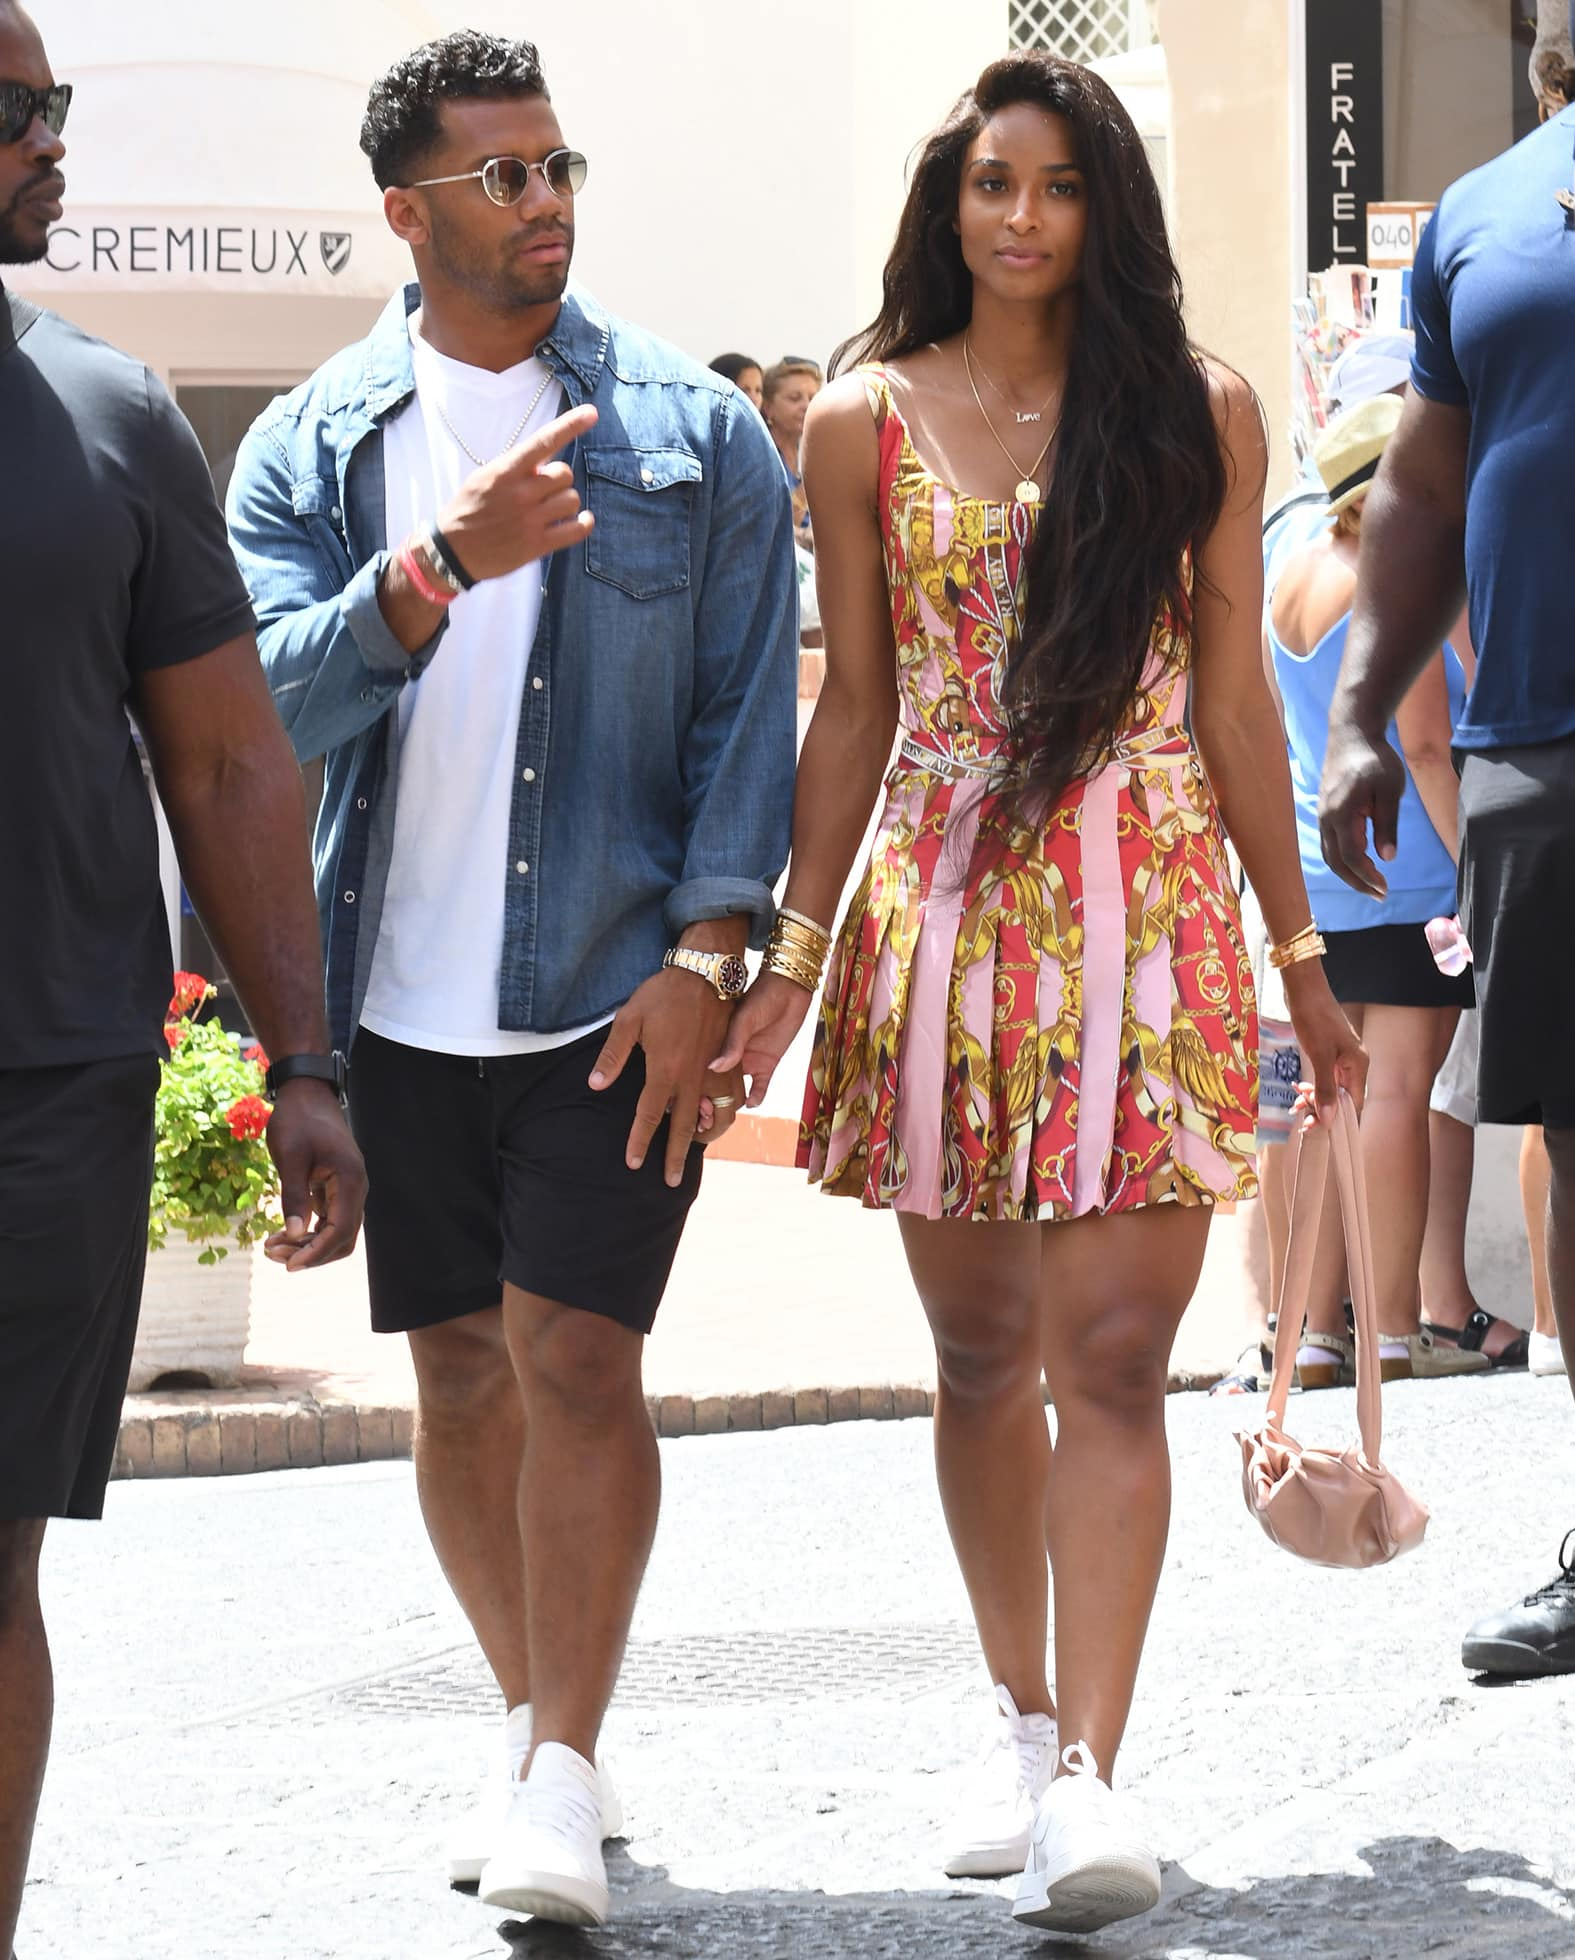 Russell Wilson and Ciara strolling around Capri in Italy for their fifth wedding anniversary on July 8, 2021